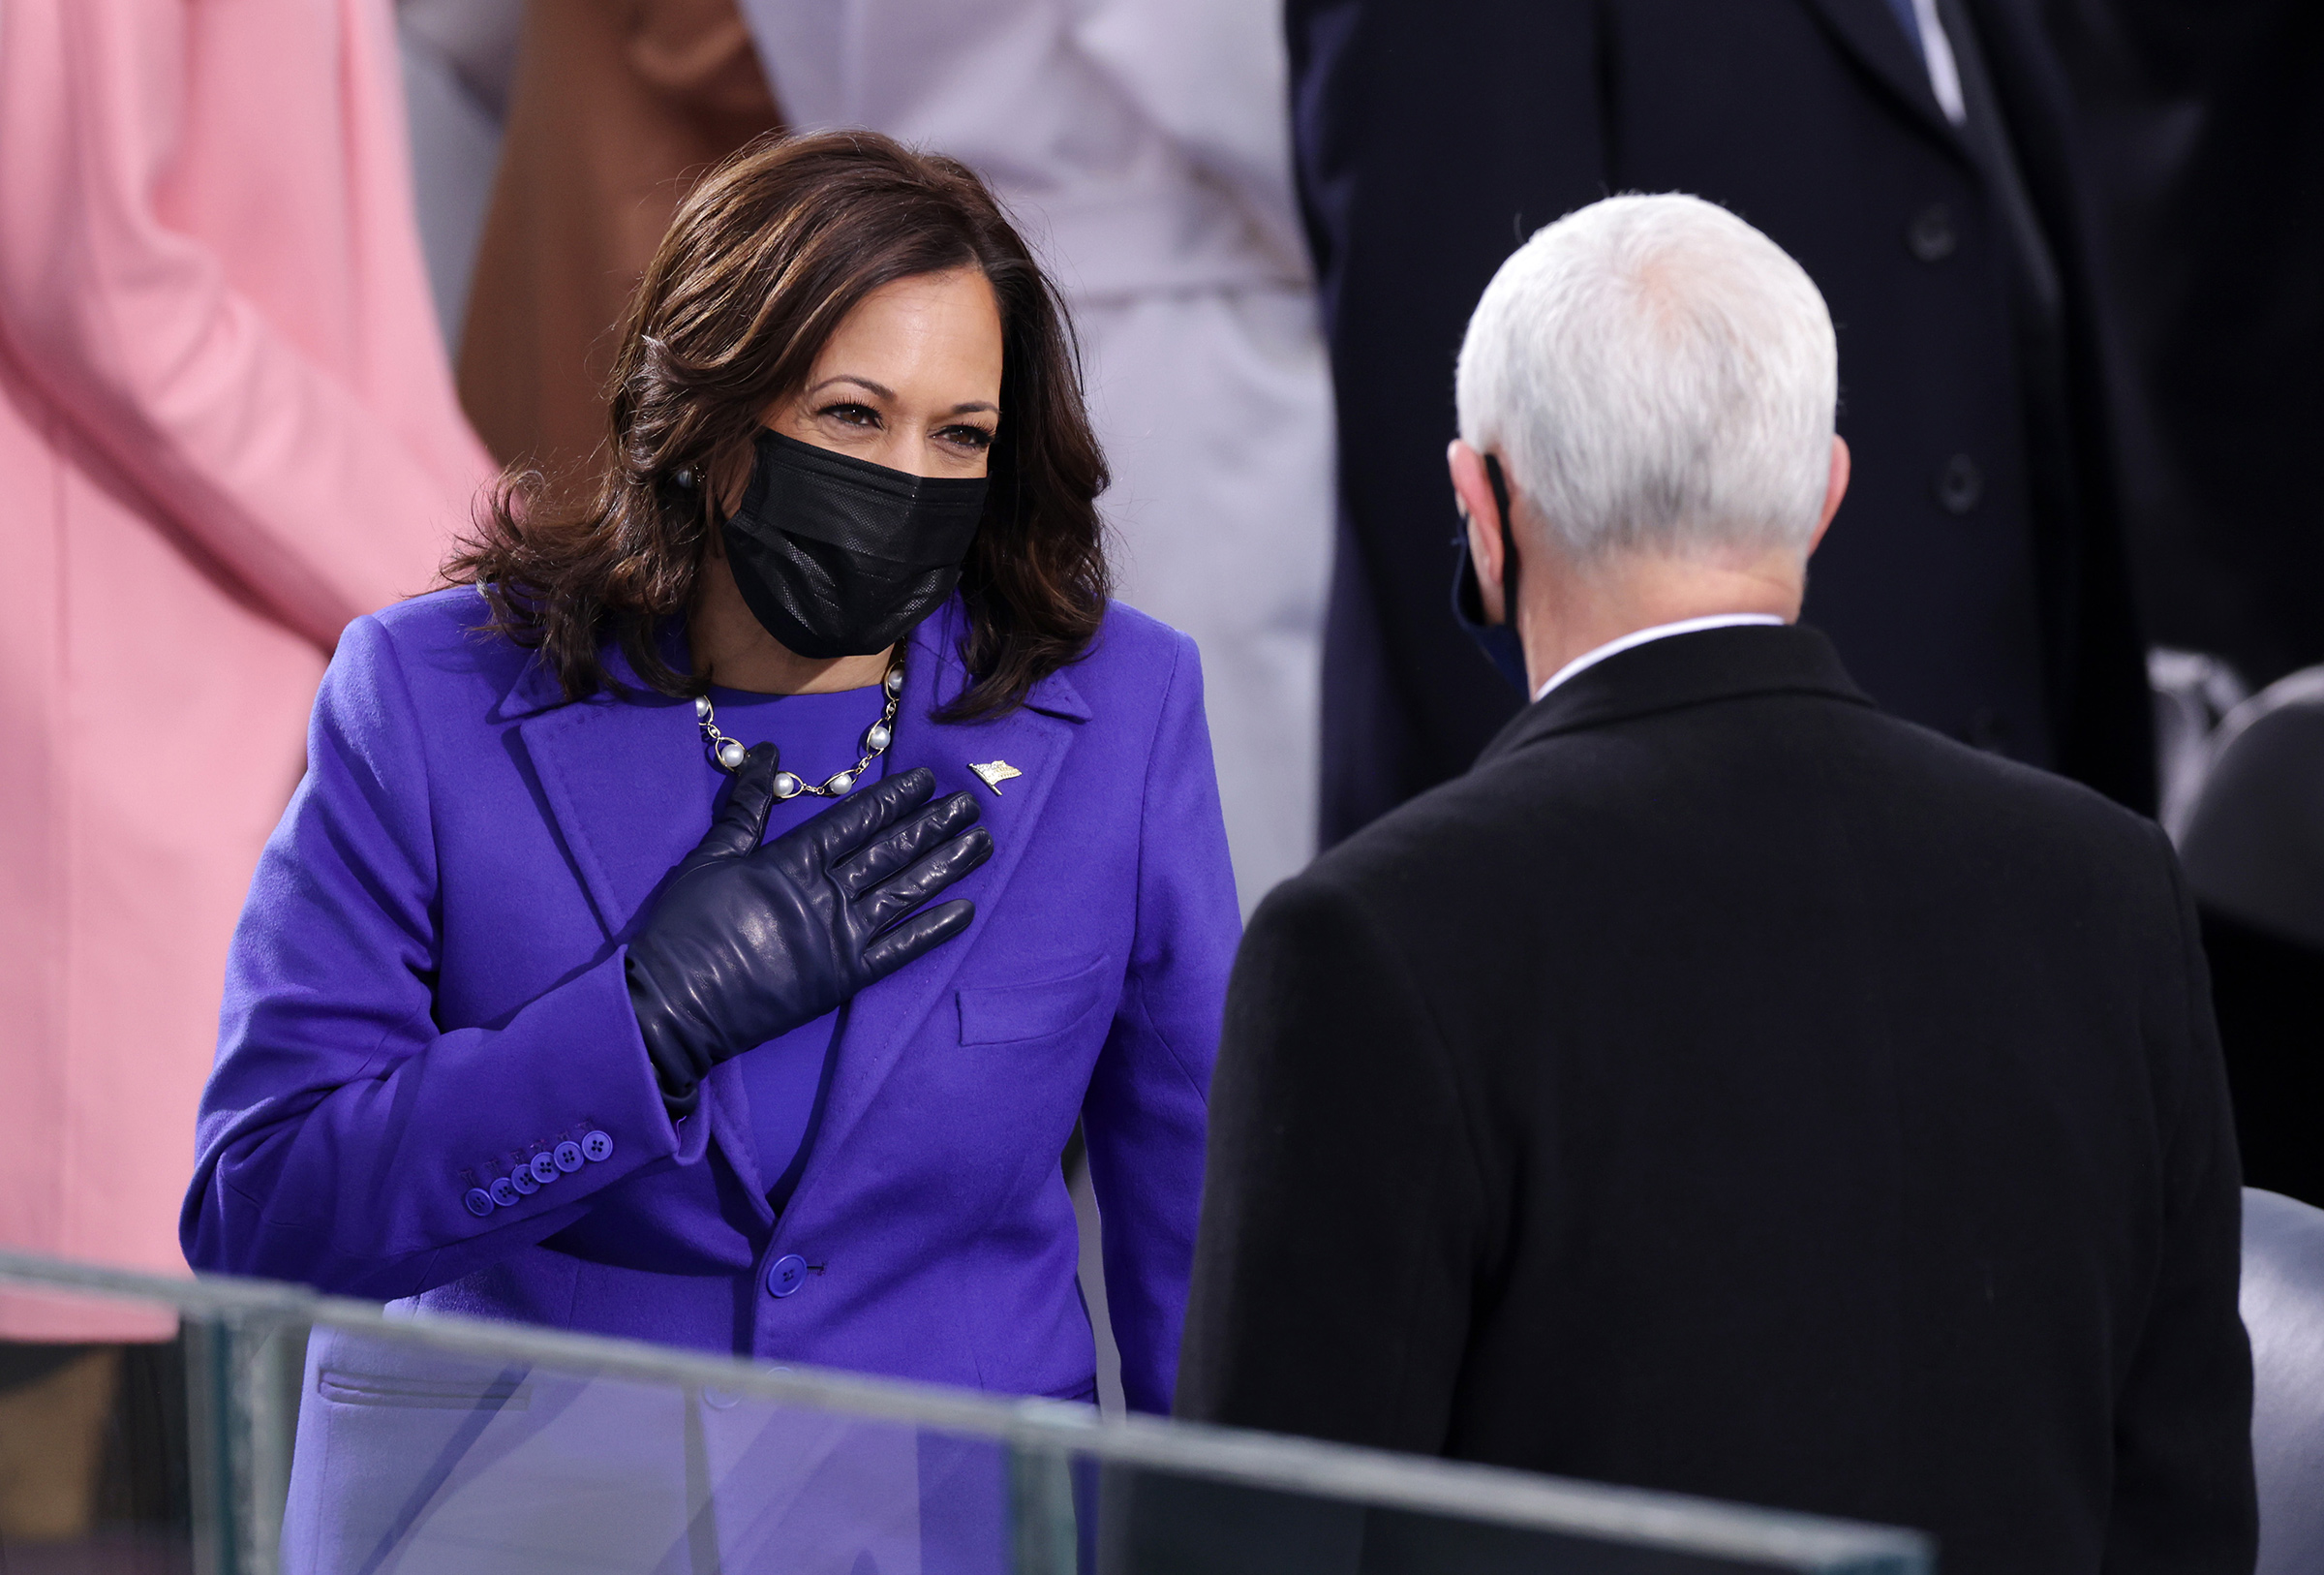 Vice President-elect Kamala Harris greets Vice President Mike Pence as she arrives to the inauguration on the West Front of the U.S. Capitol.